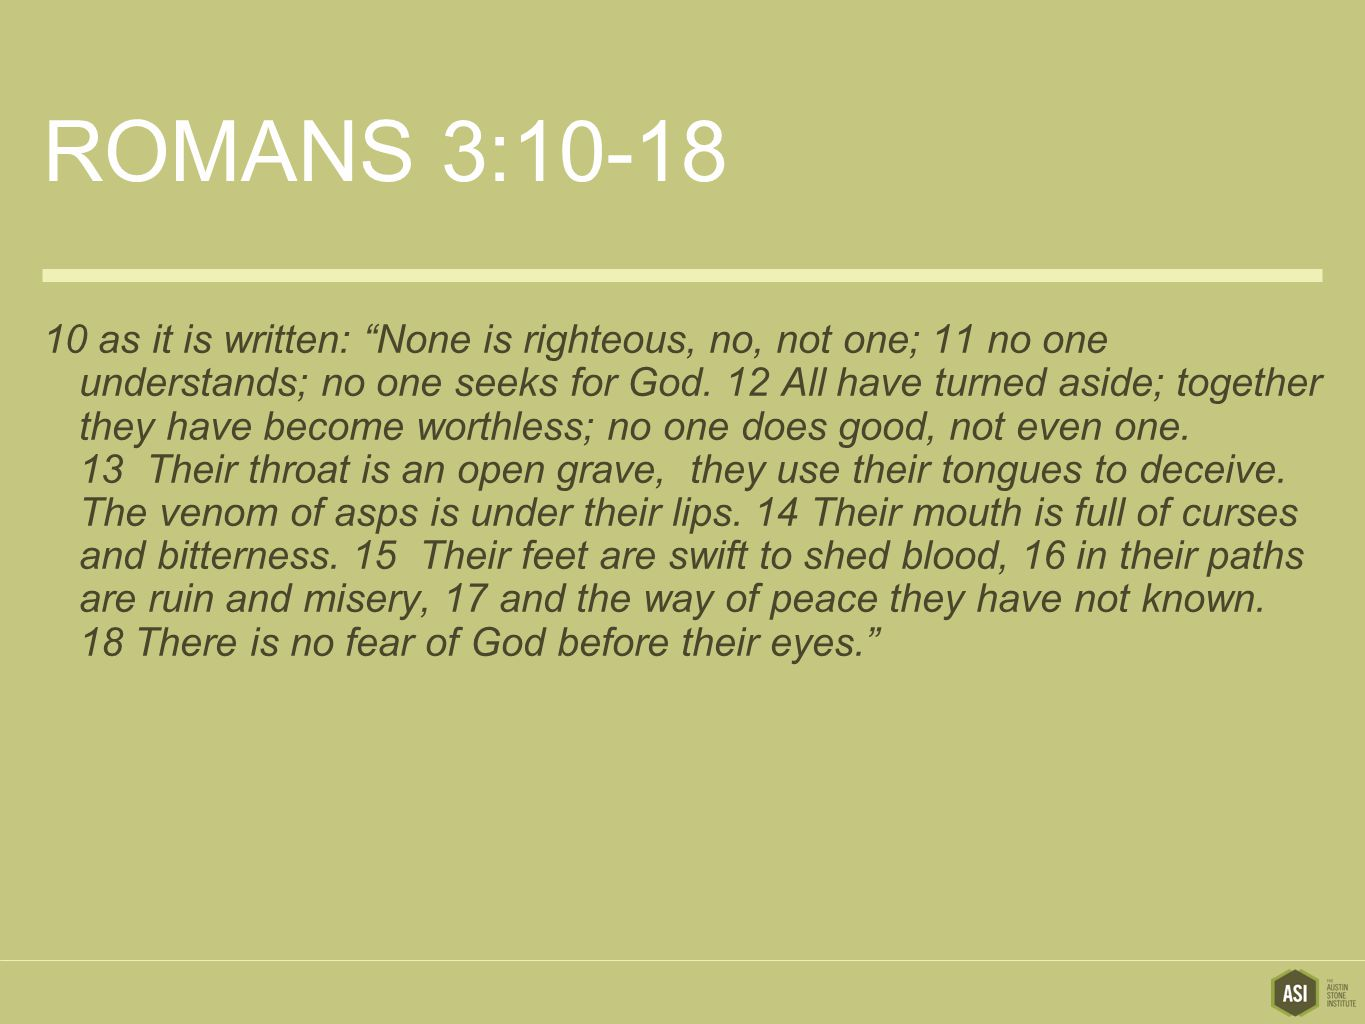 ROMANS 3: as it is written: None is righteous, no, not one; 11 no one understands; no one seeks for God.